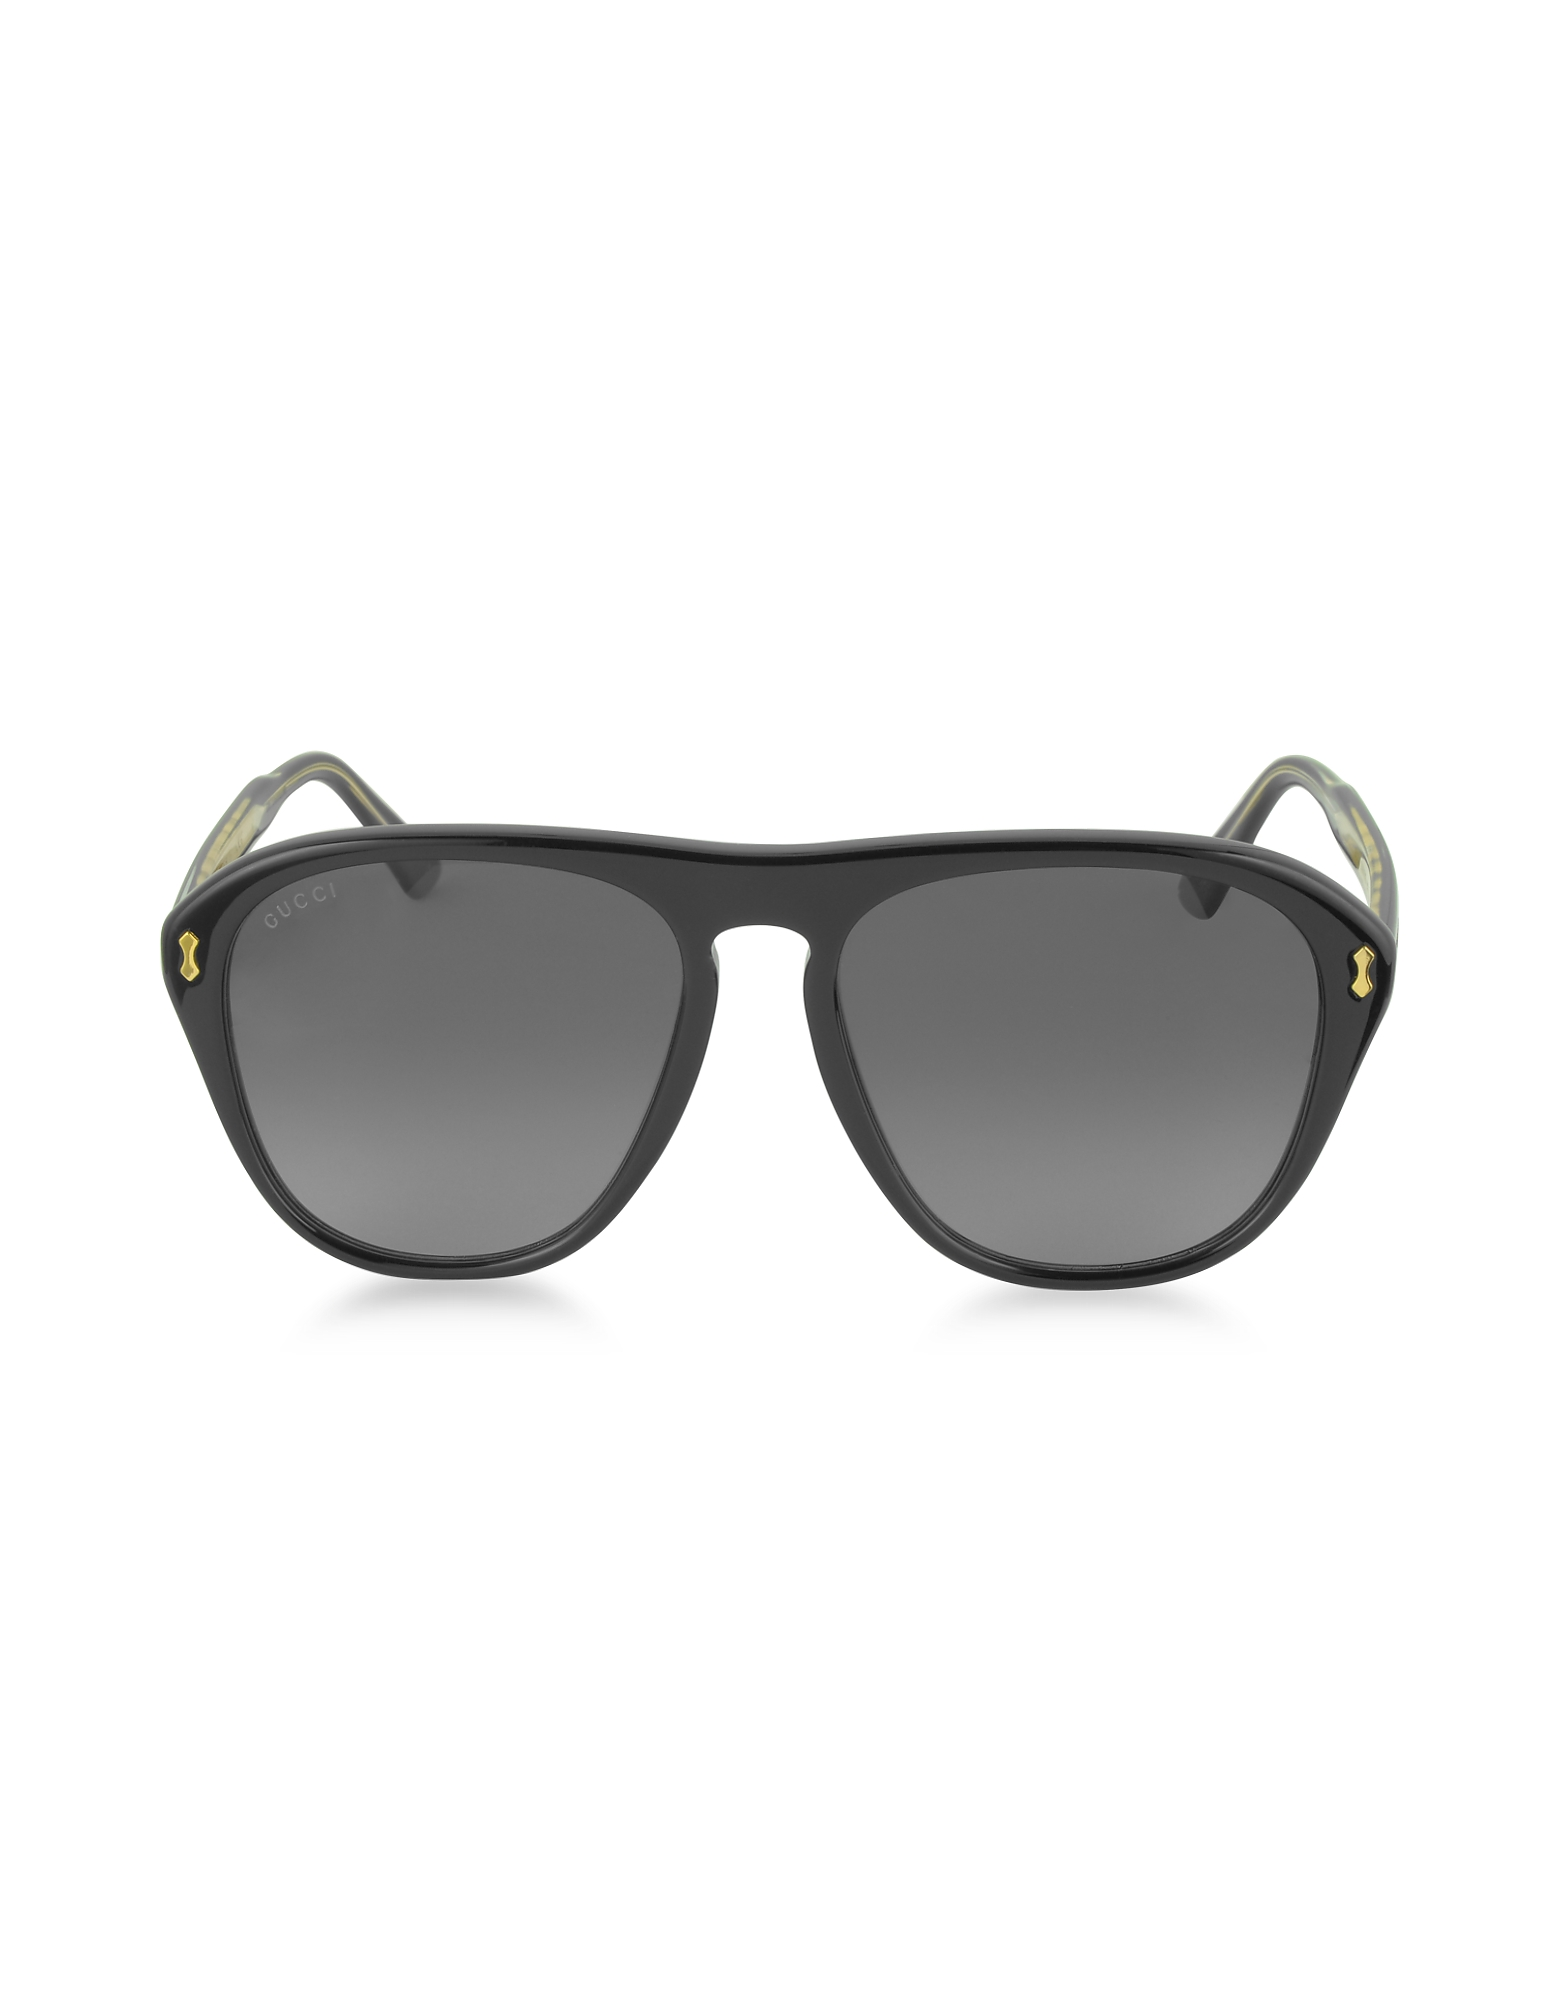 Gucci Designer Sunglasses, GG0128S 007 Black Acetate Aviator Men's Sunglasses